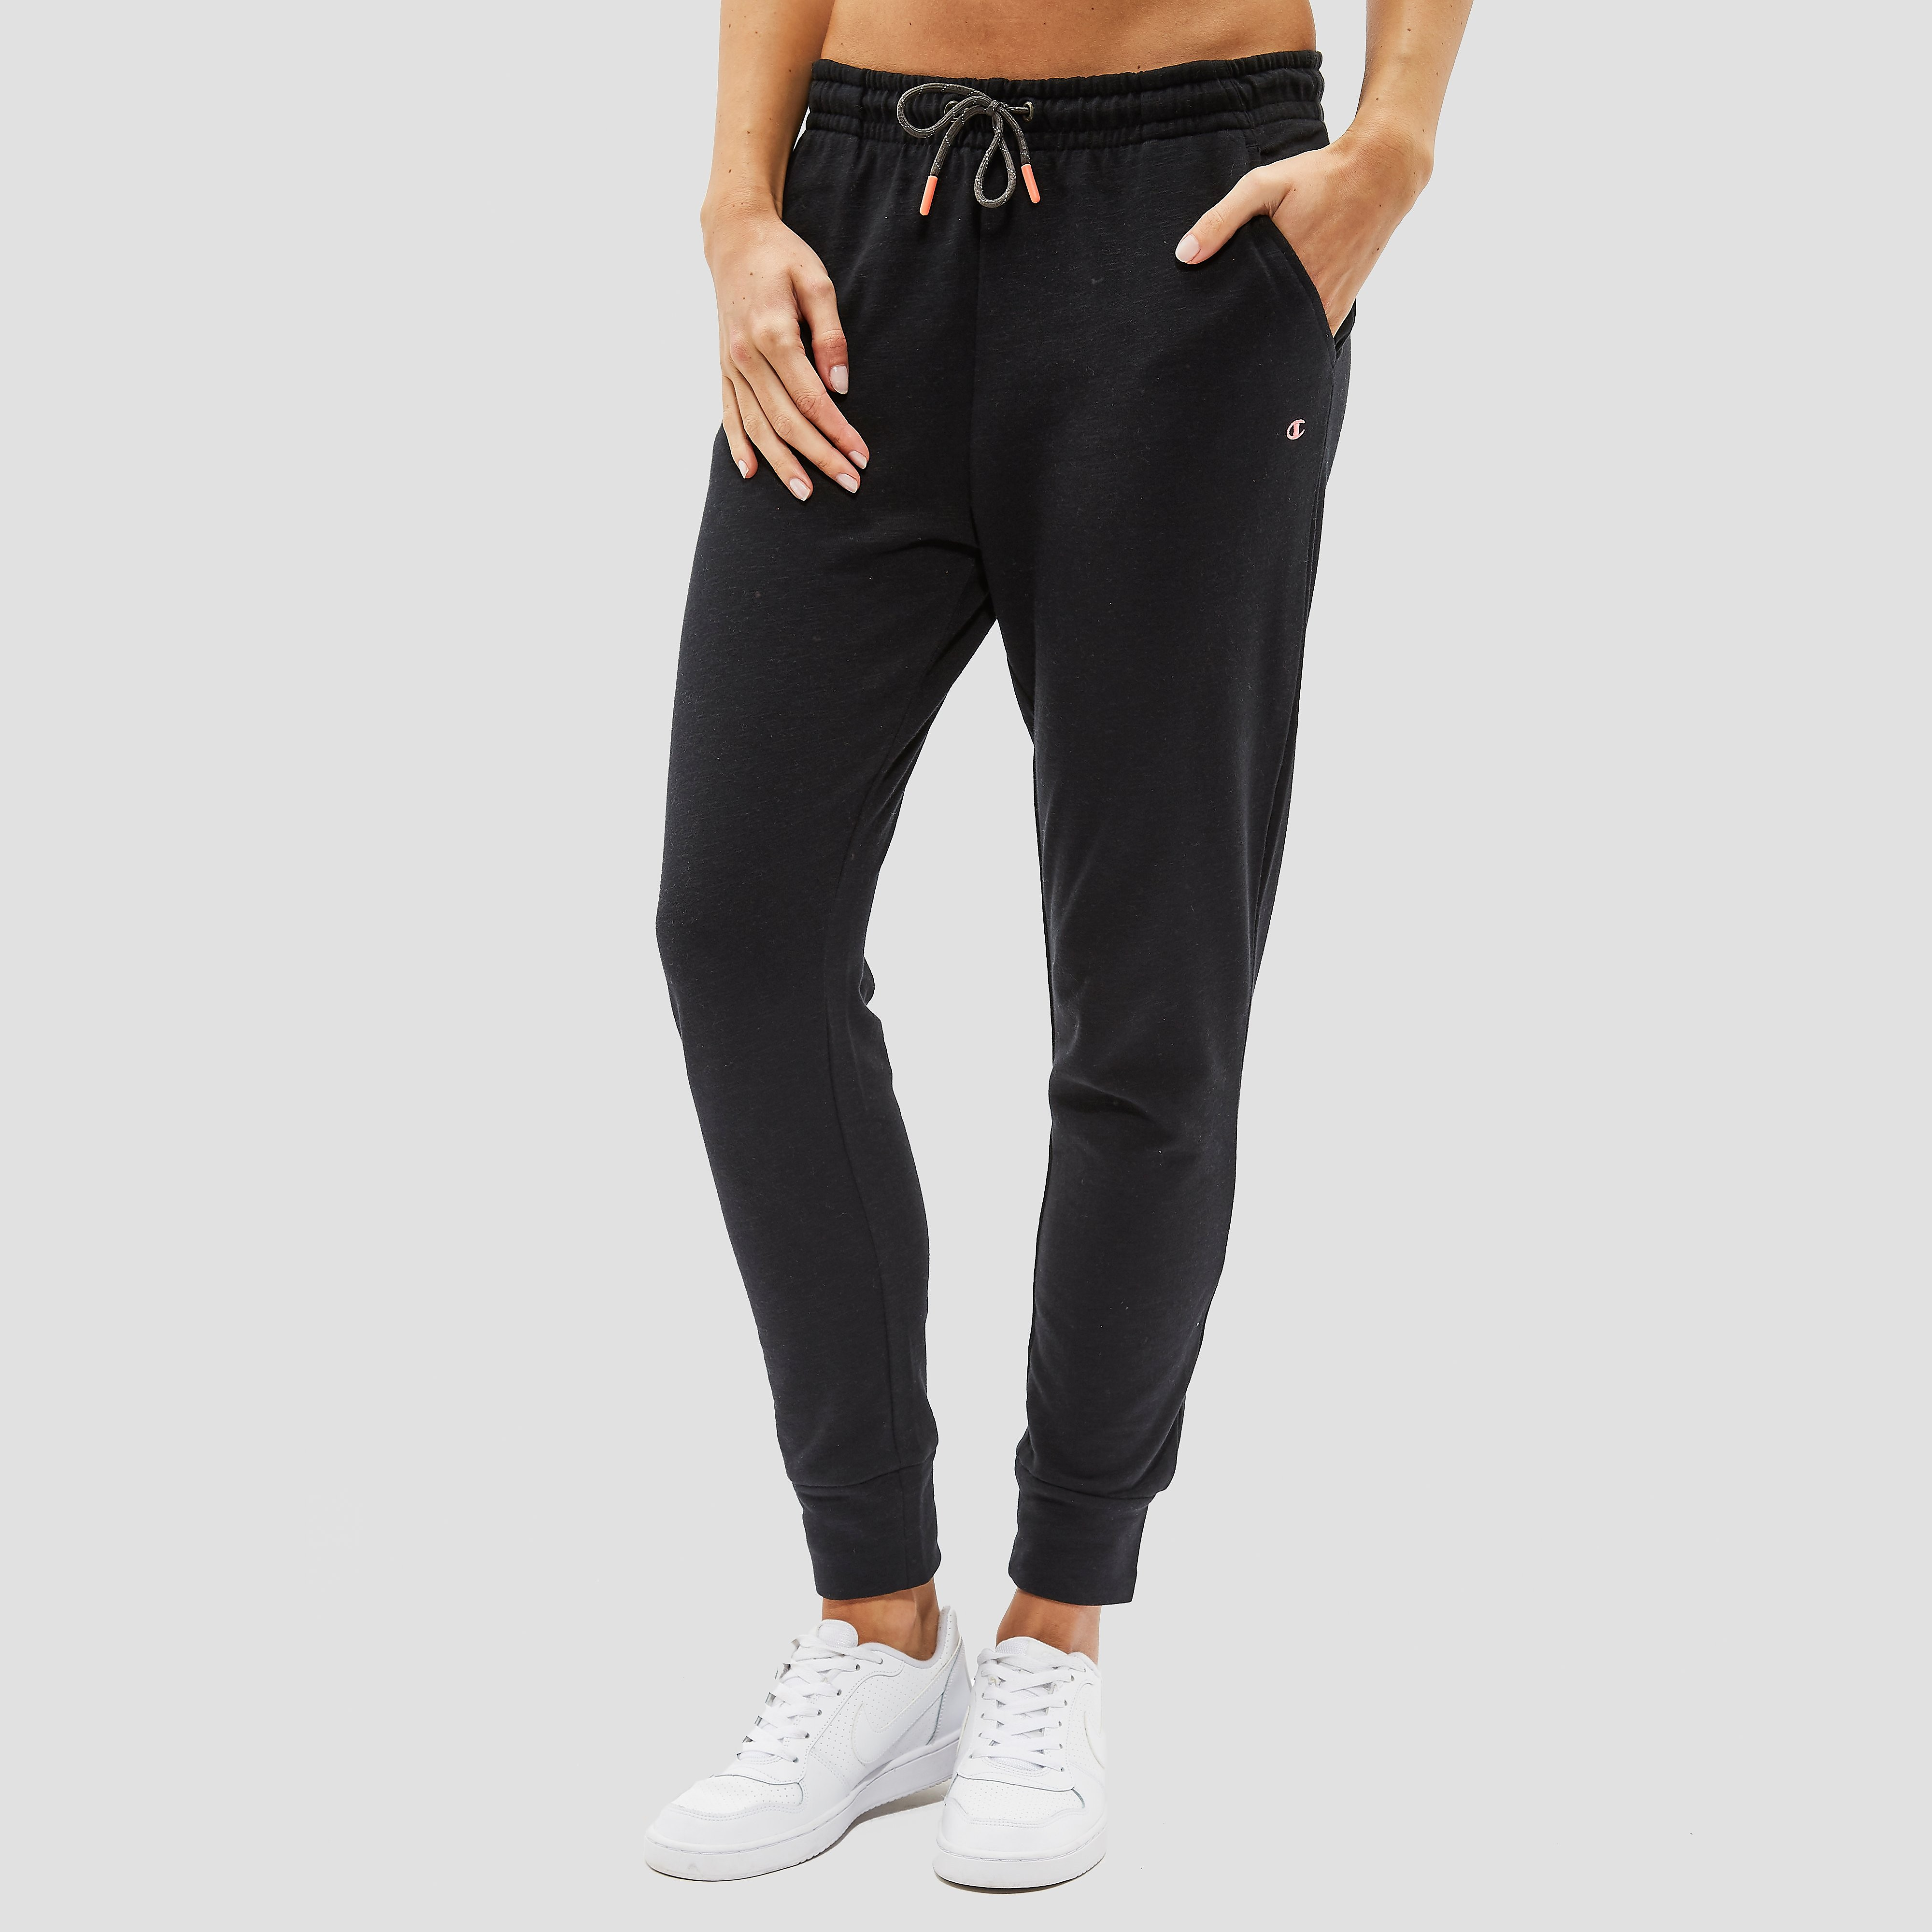 CHAMPION FIE SLIM JOGGINGBROEK